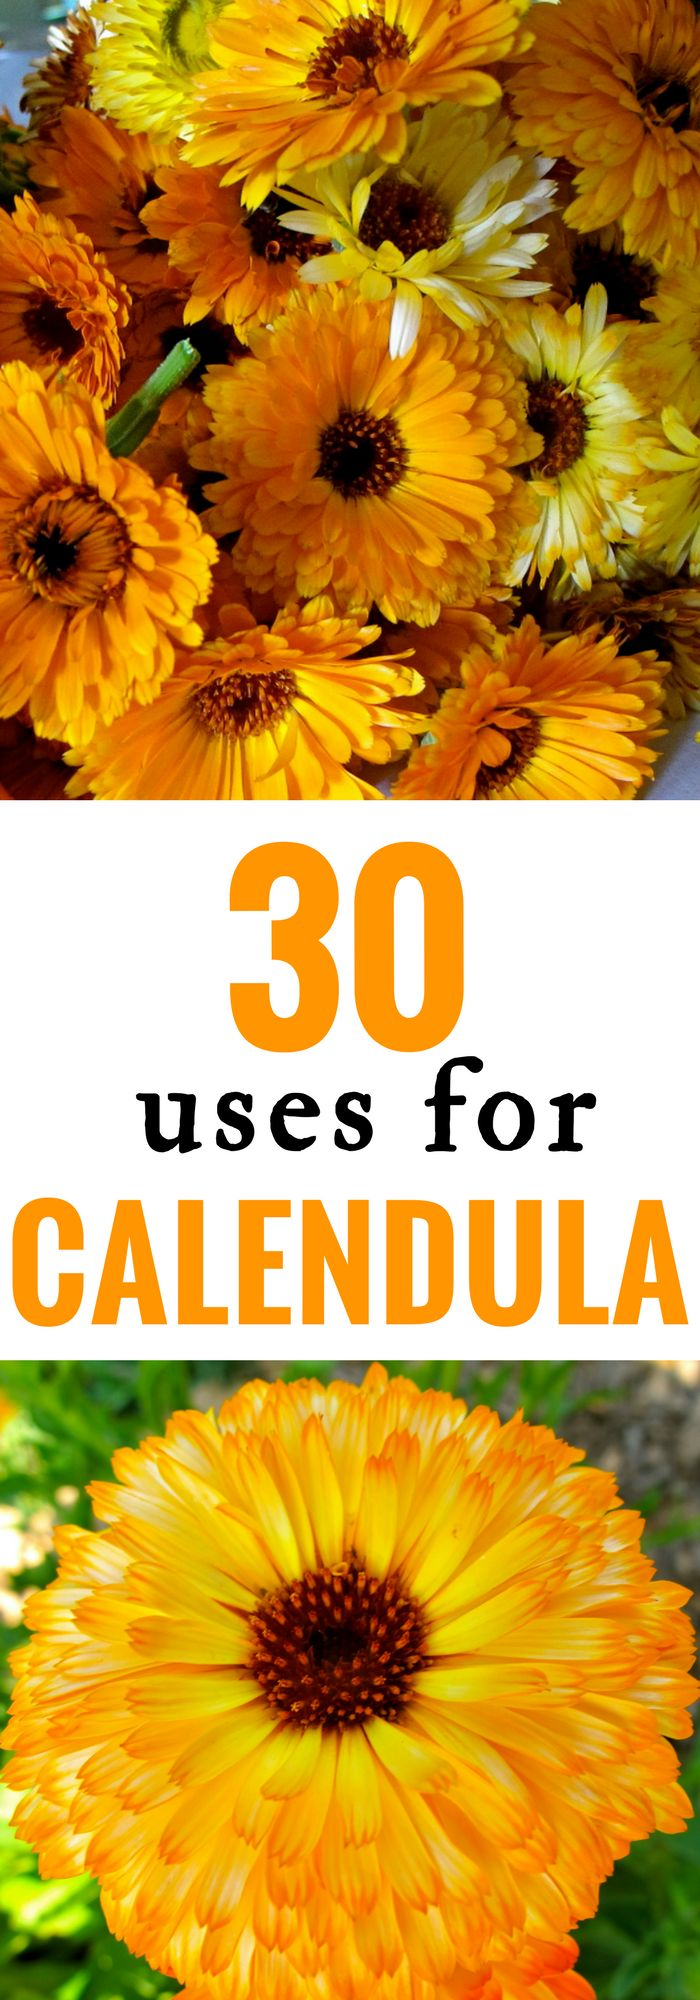 Natural Medicine | Herbs | Calendula is a wonderful healing herb that can treat and cure a variety of ailments and conditions. Here are just 30 Ways to Use Calendula